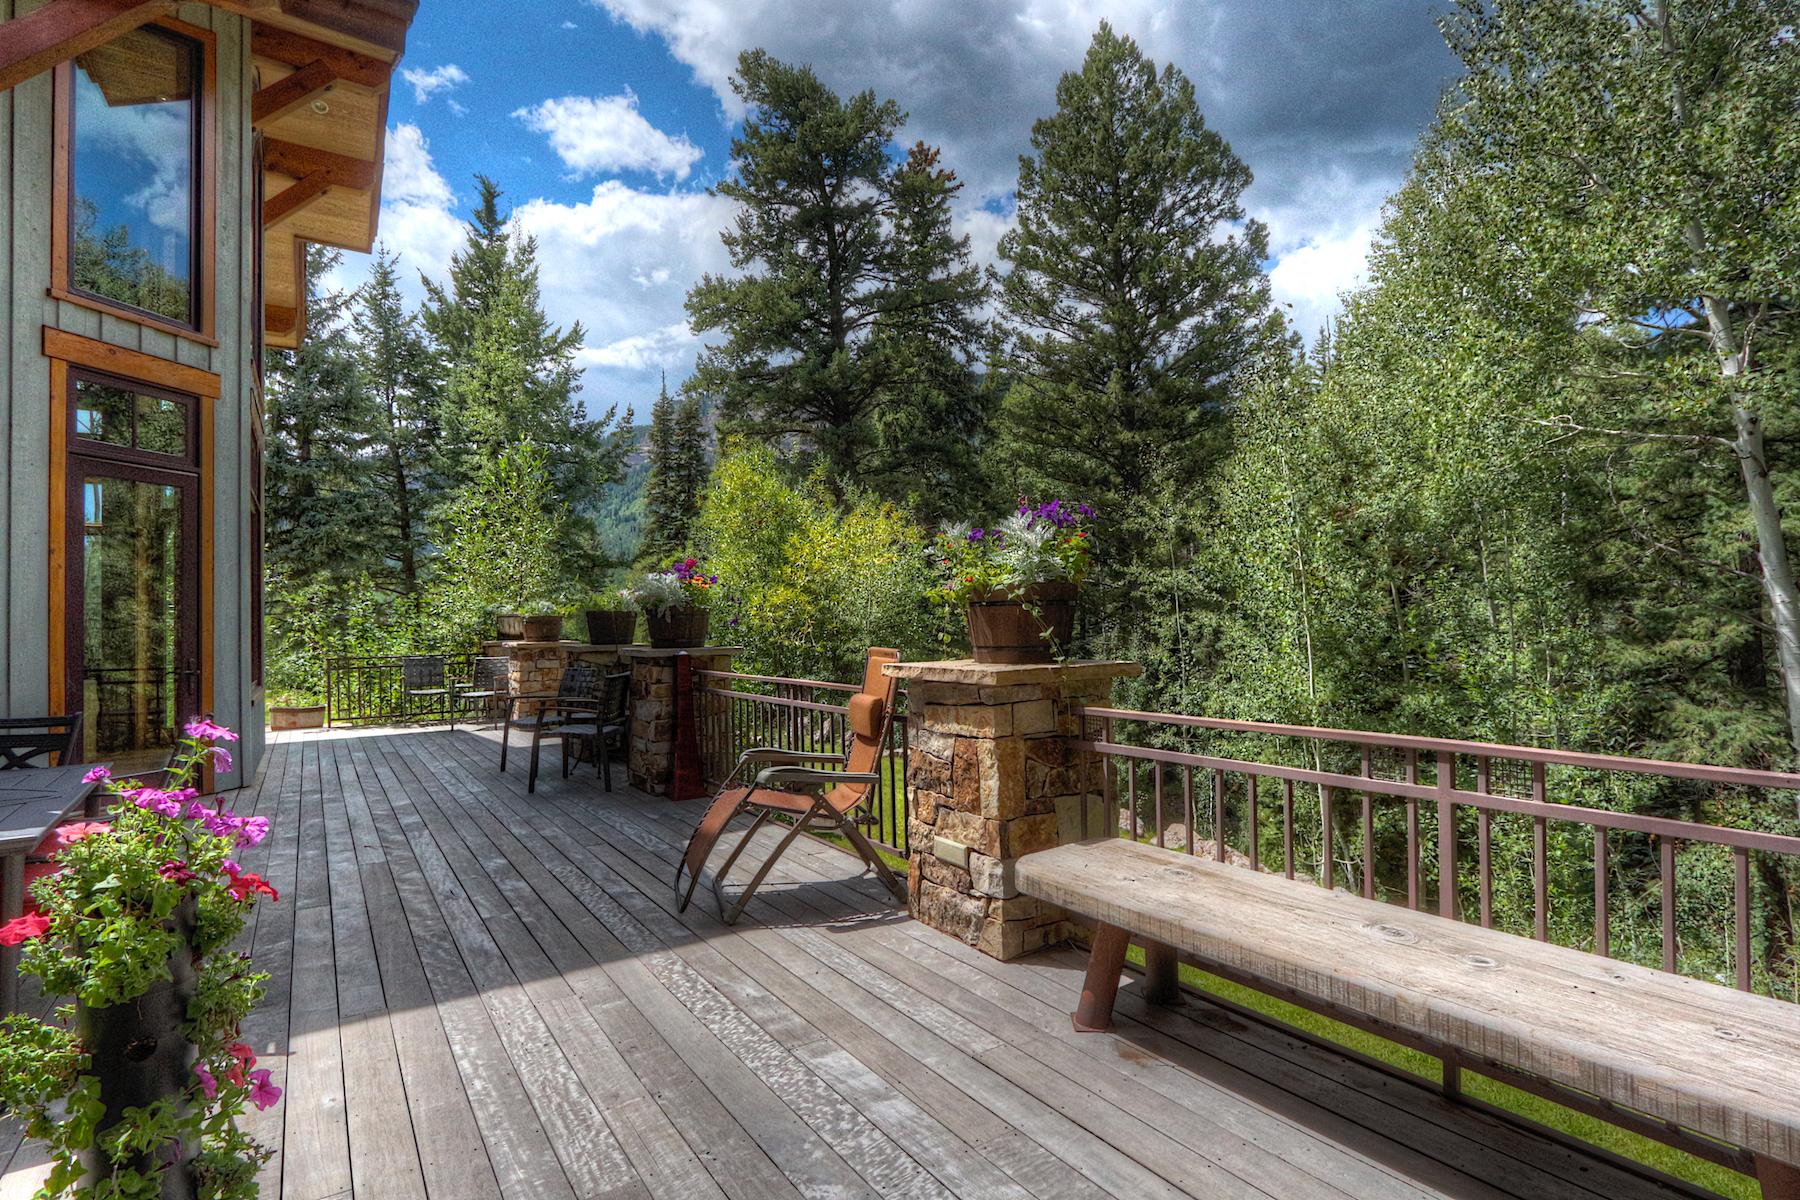 Additional photo for property listing at CastleRock at Two Dogs 455 Pinnacle View Drive Durango, Colorado 81301 United States